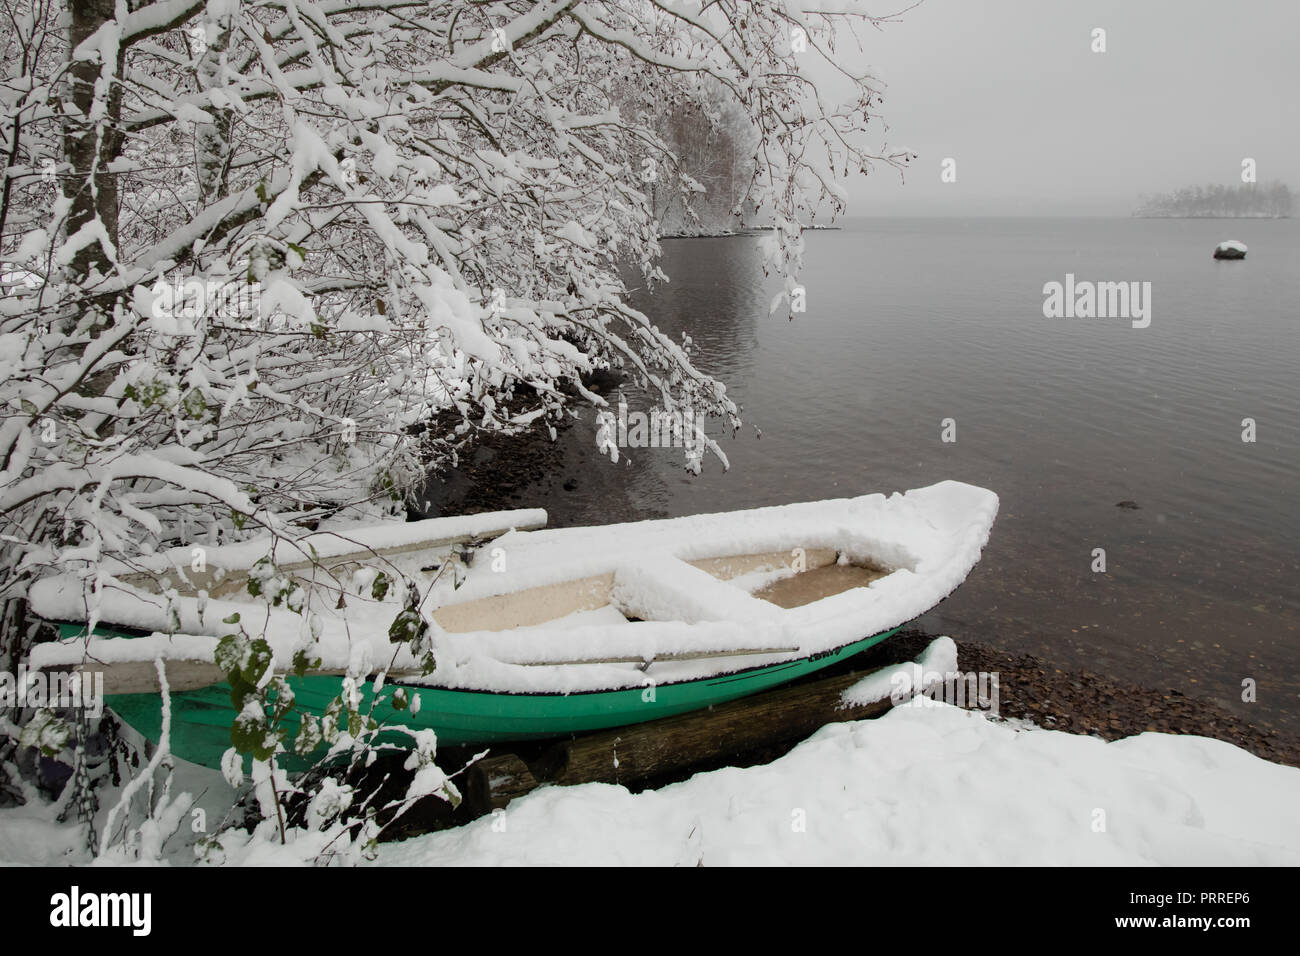 Early first snow has arrived and surprised the boat owner of this green rowing boat - Stock Image